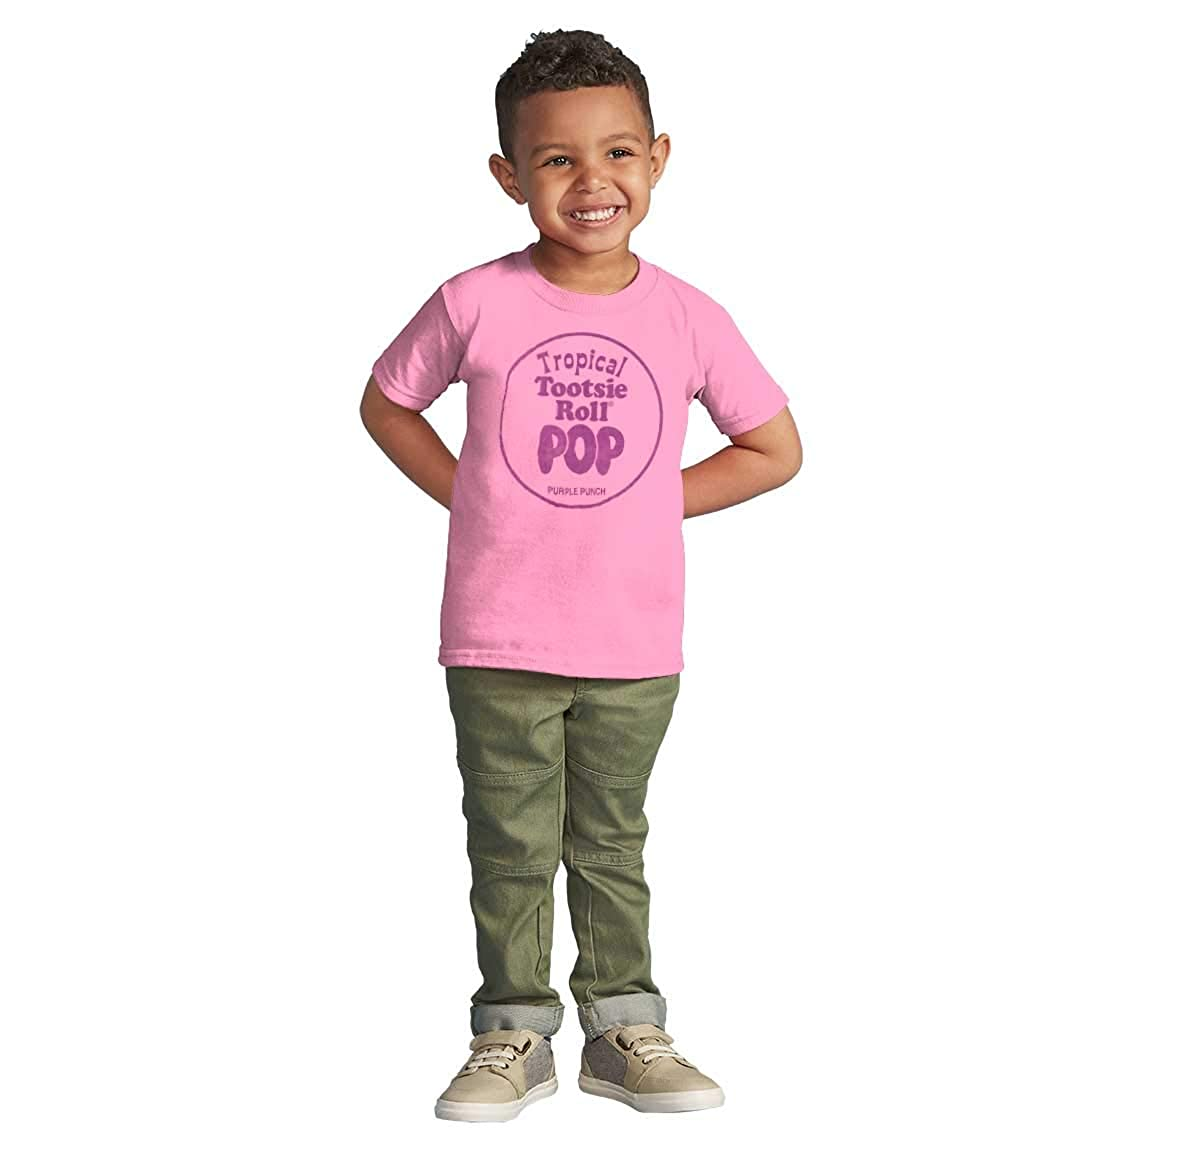 Topical Purple Punch Vintage Tootsie Pop Infant Toddler T Shirt